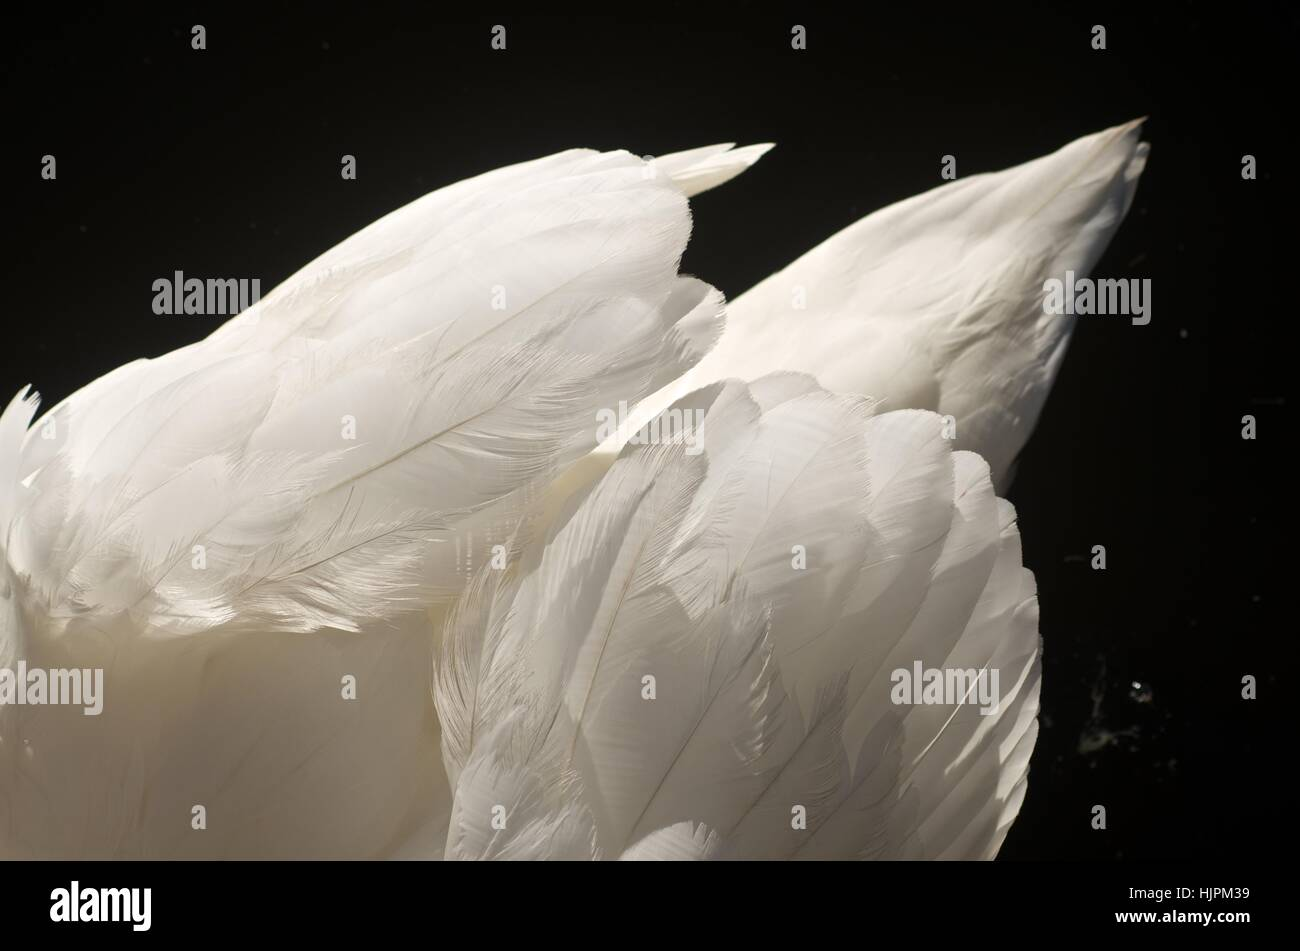 Detail of feathers on a swan's back - Stock Image